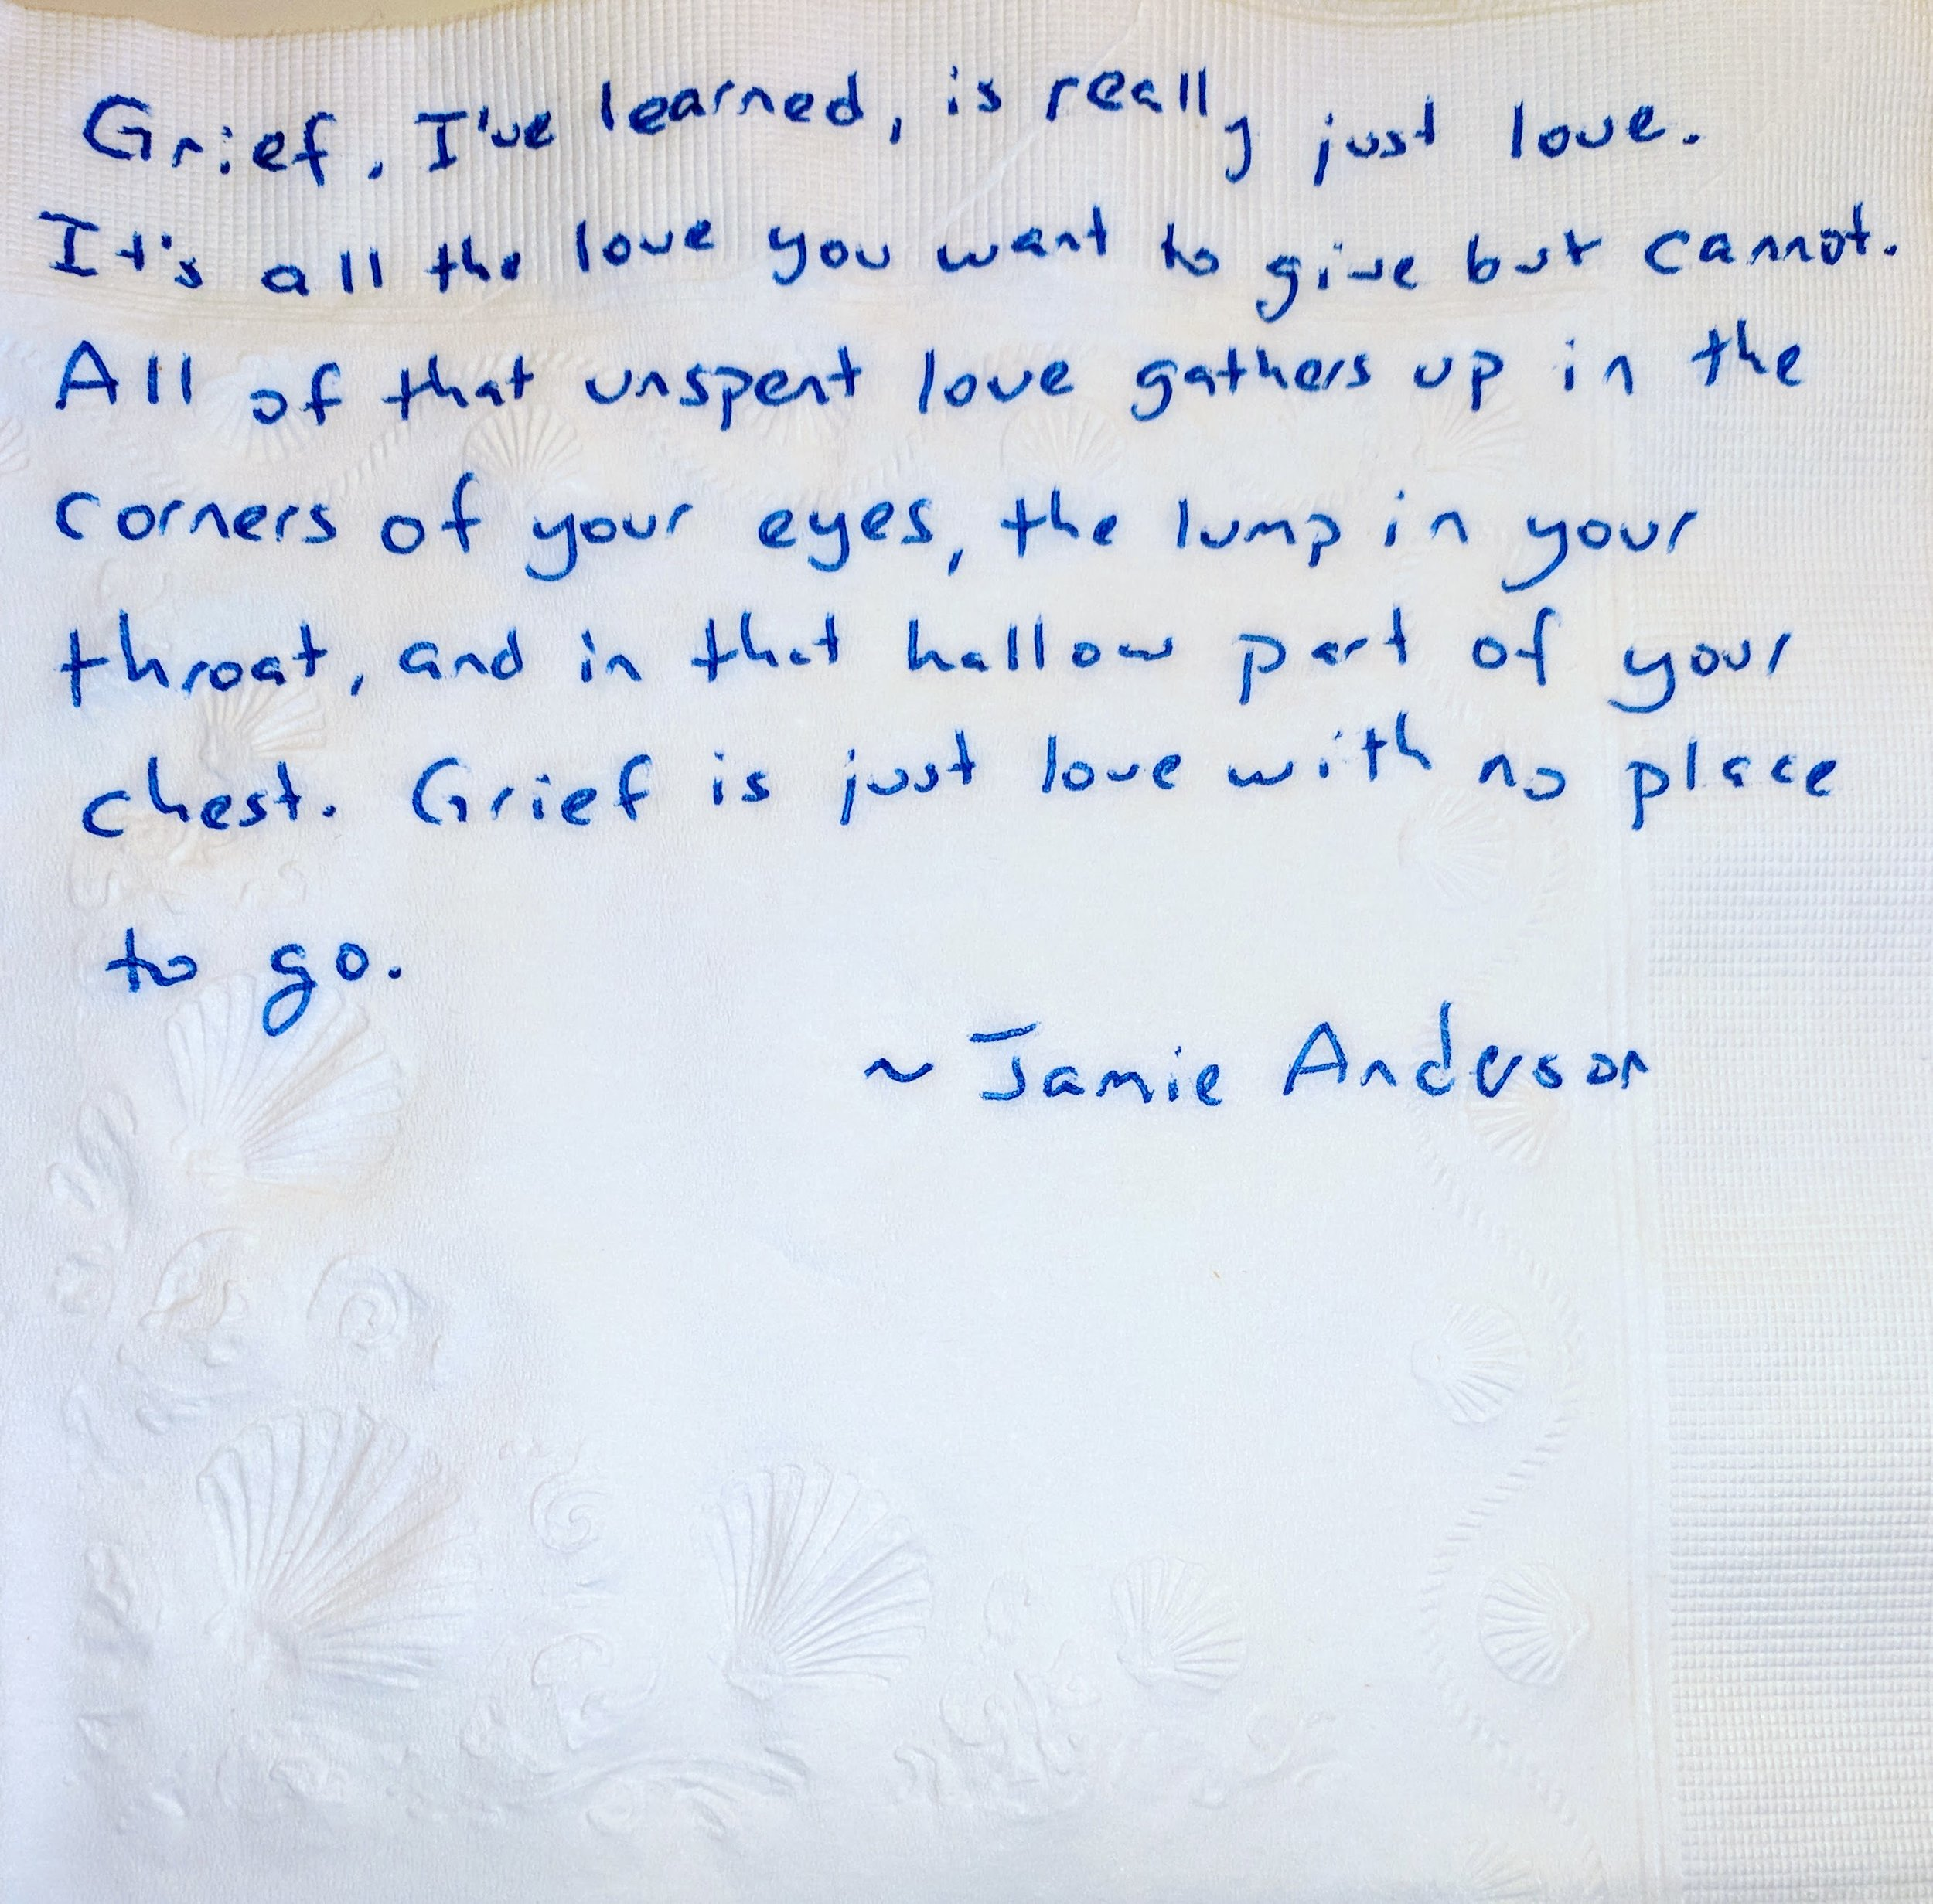 """""""Grief, I've learned, is really just love. It's all the love you want to give, but cannot. All that unspent love gathers up in the corners of your eyes, the lump in your throat, and in that hollow part of your chest. Grief is just love with no place to go"""" ~ Jamie Anderson"""